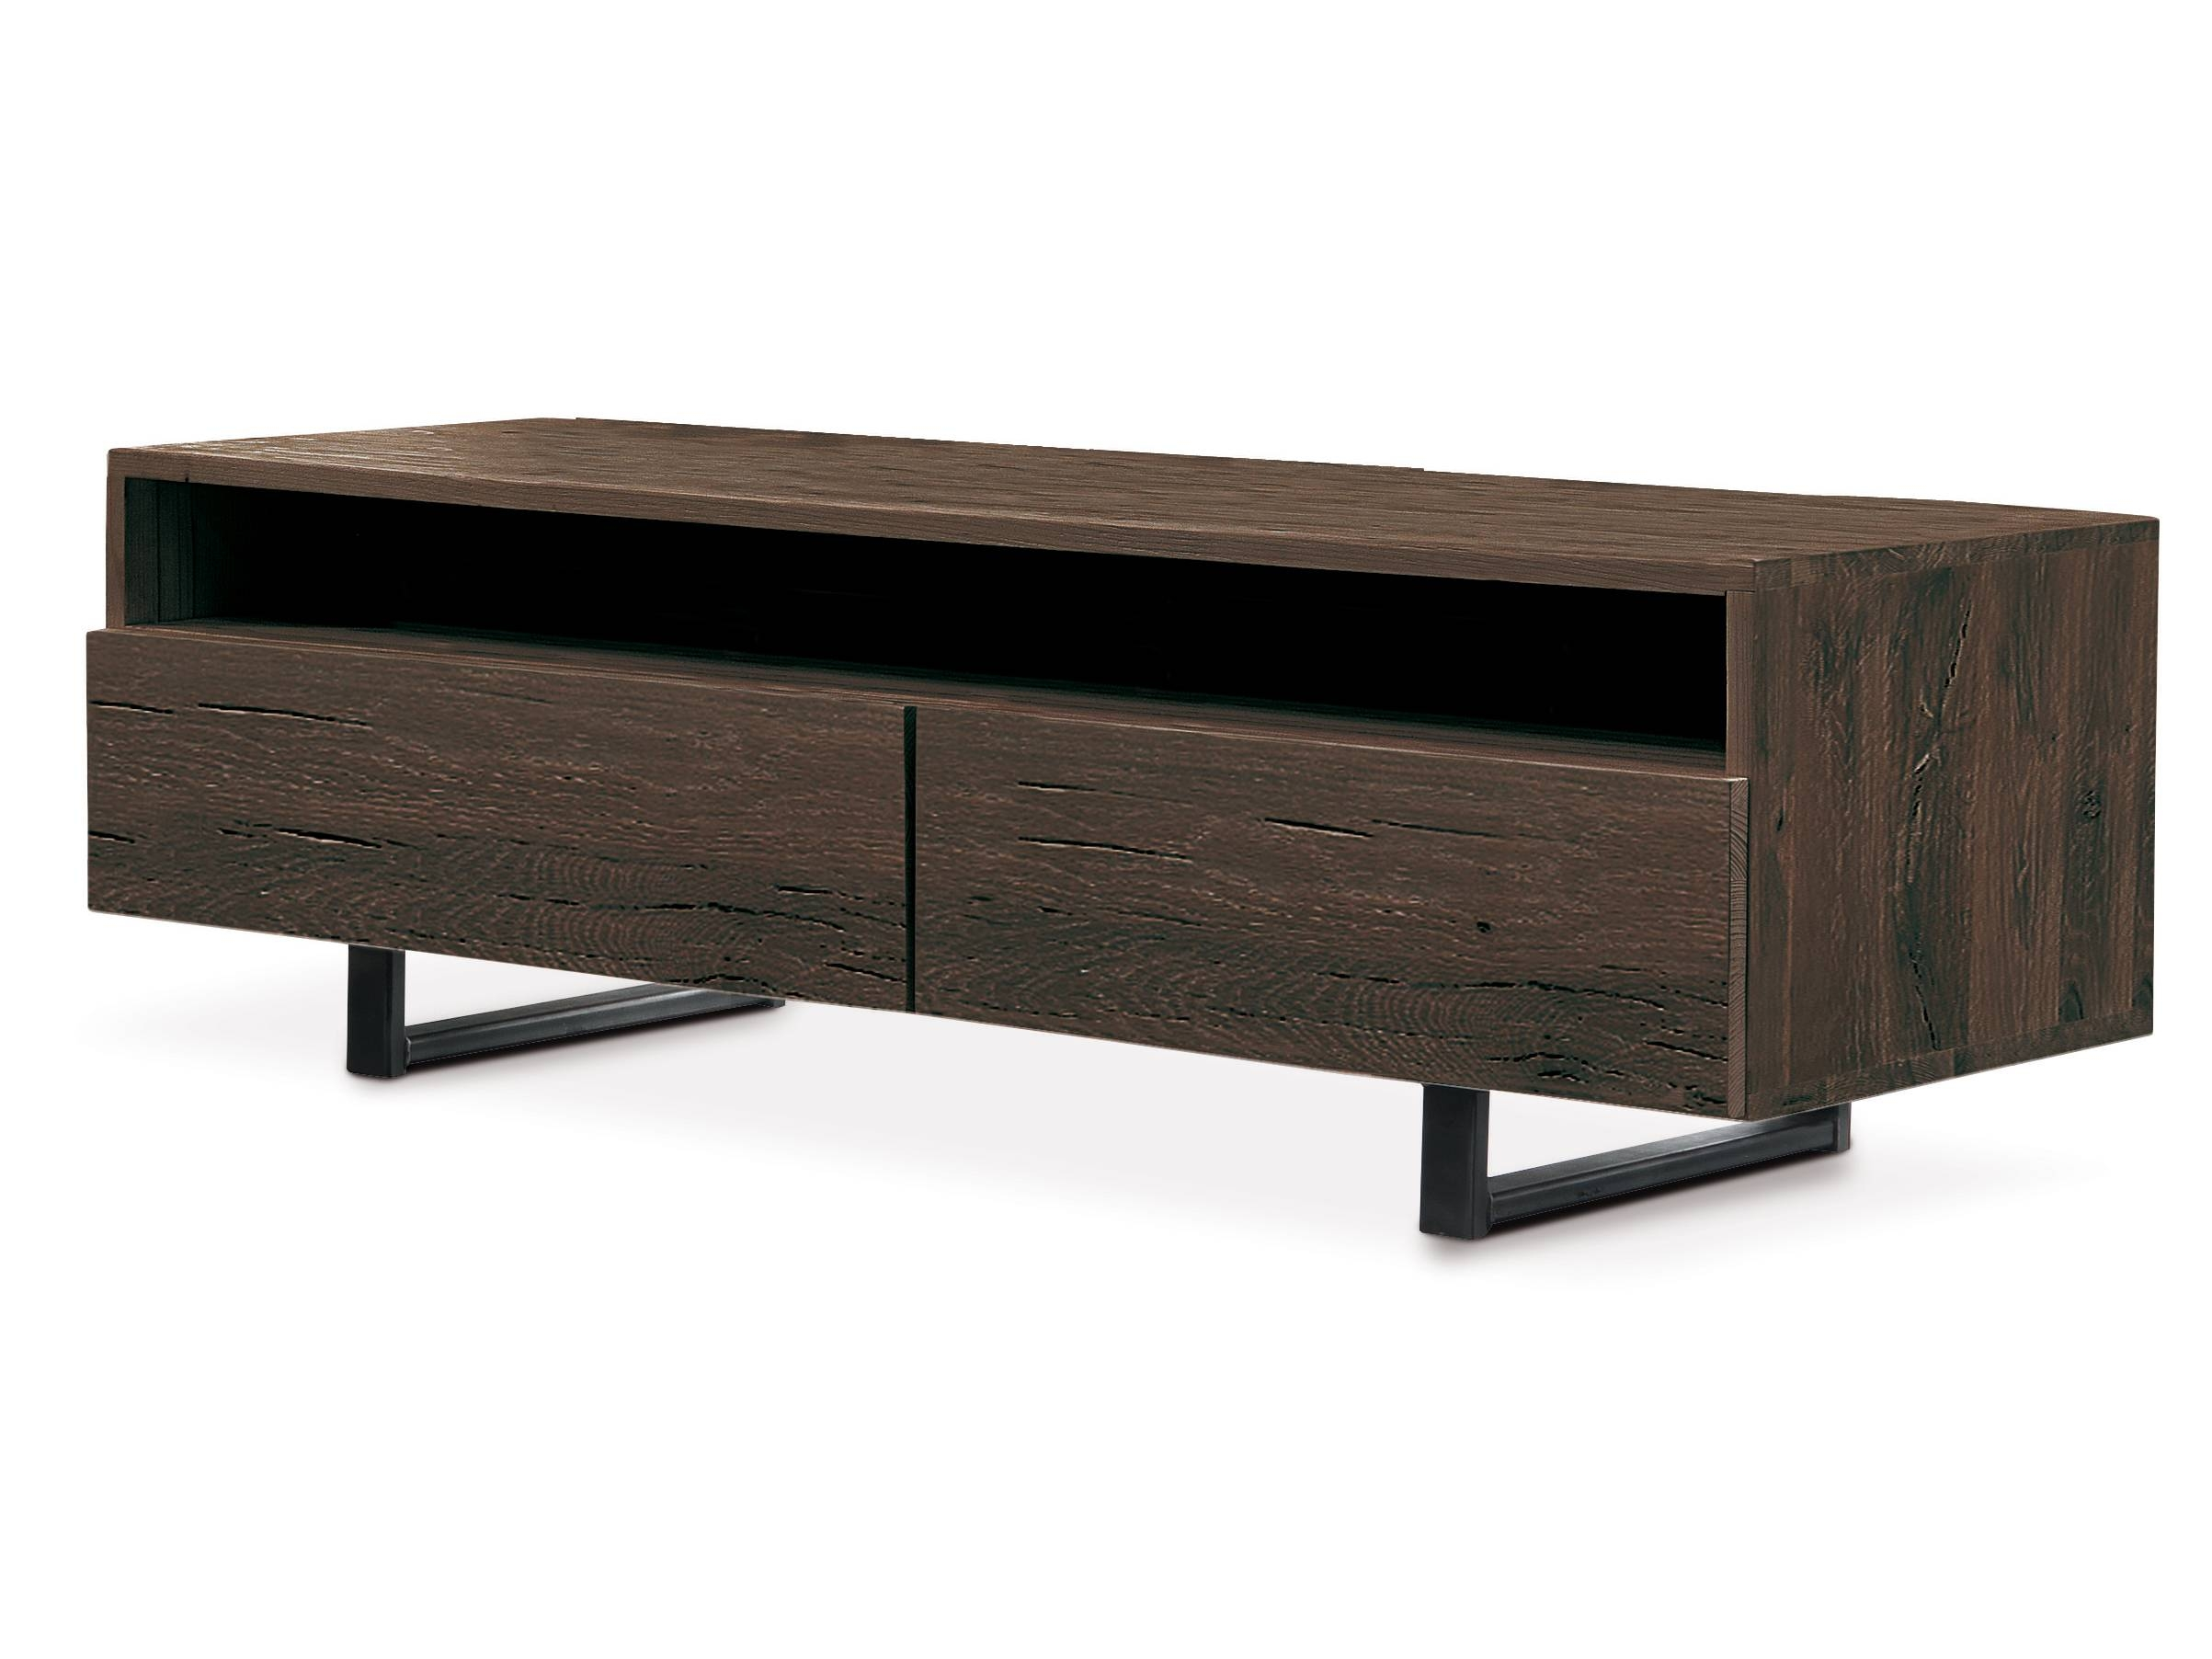 Horizon | Tv Cabinet Oliver B. Casa Collectionoliver B. intended for Tv Sideboards (Image 11 of 30)